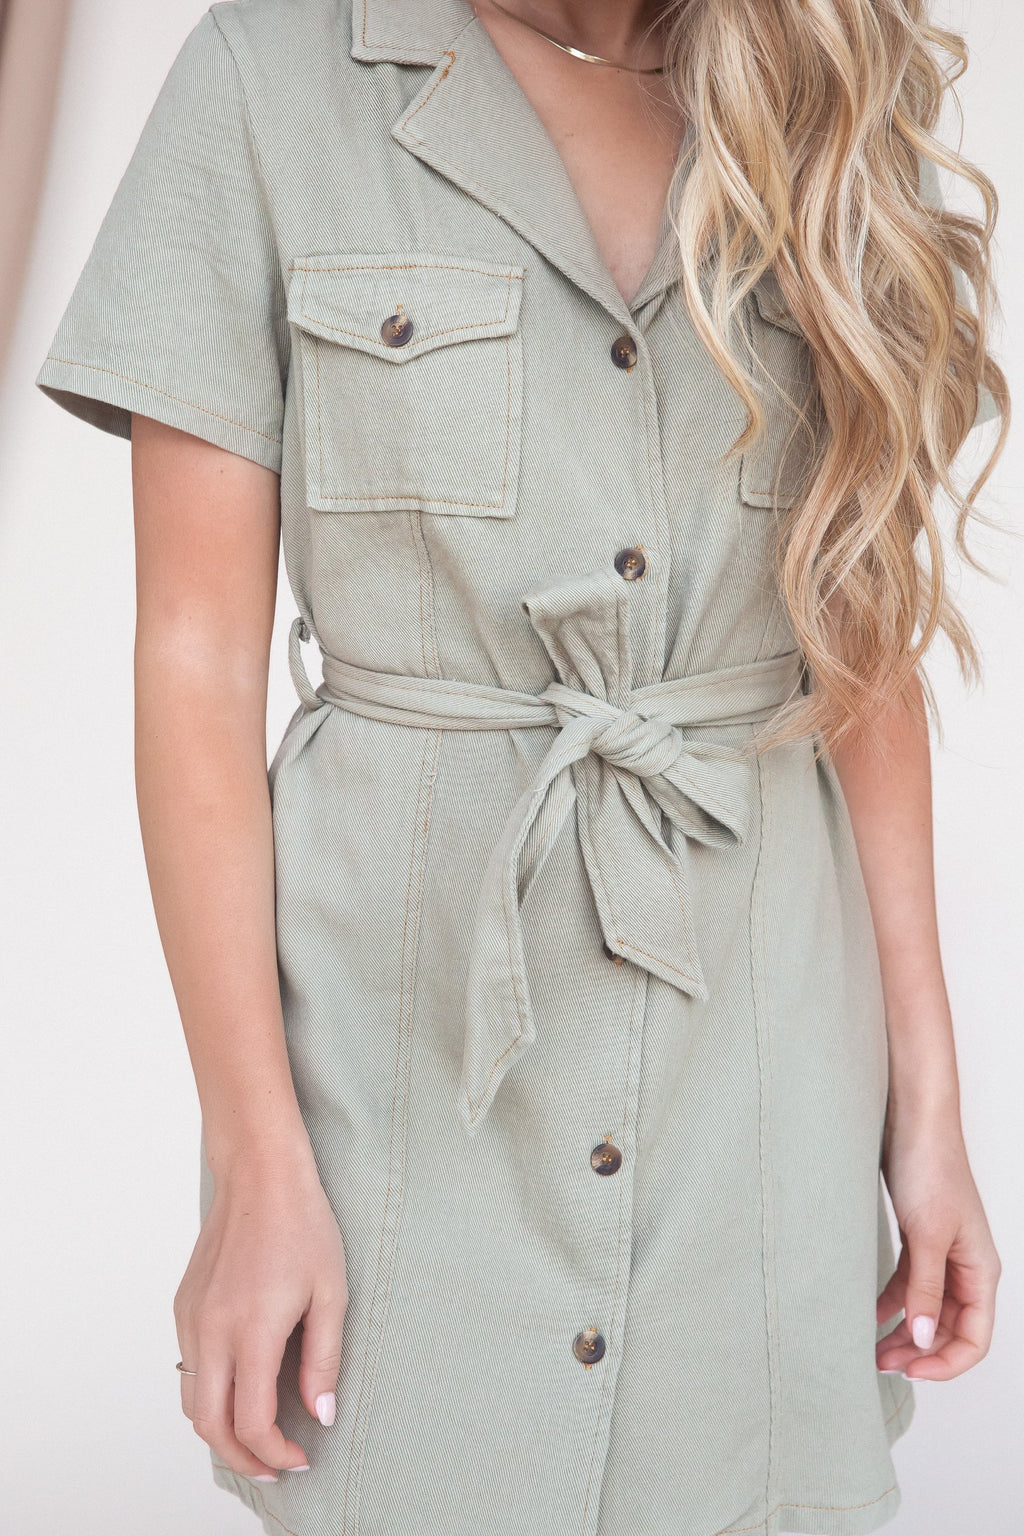 Irene Olive Short Sleeve Button Down Dress